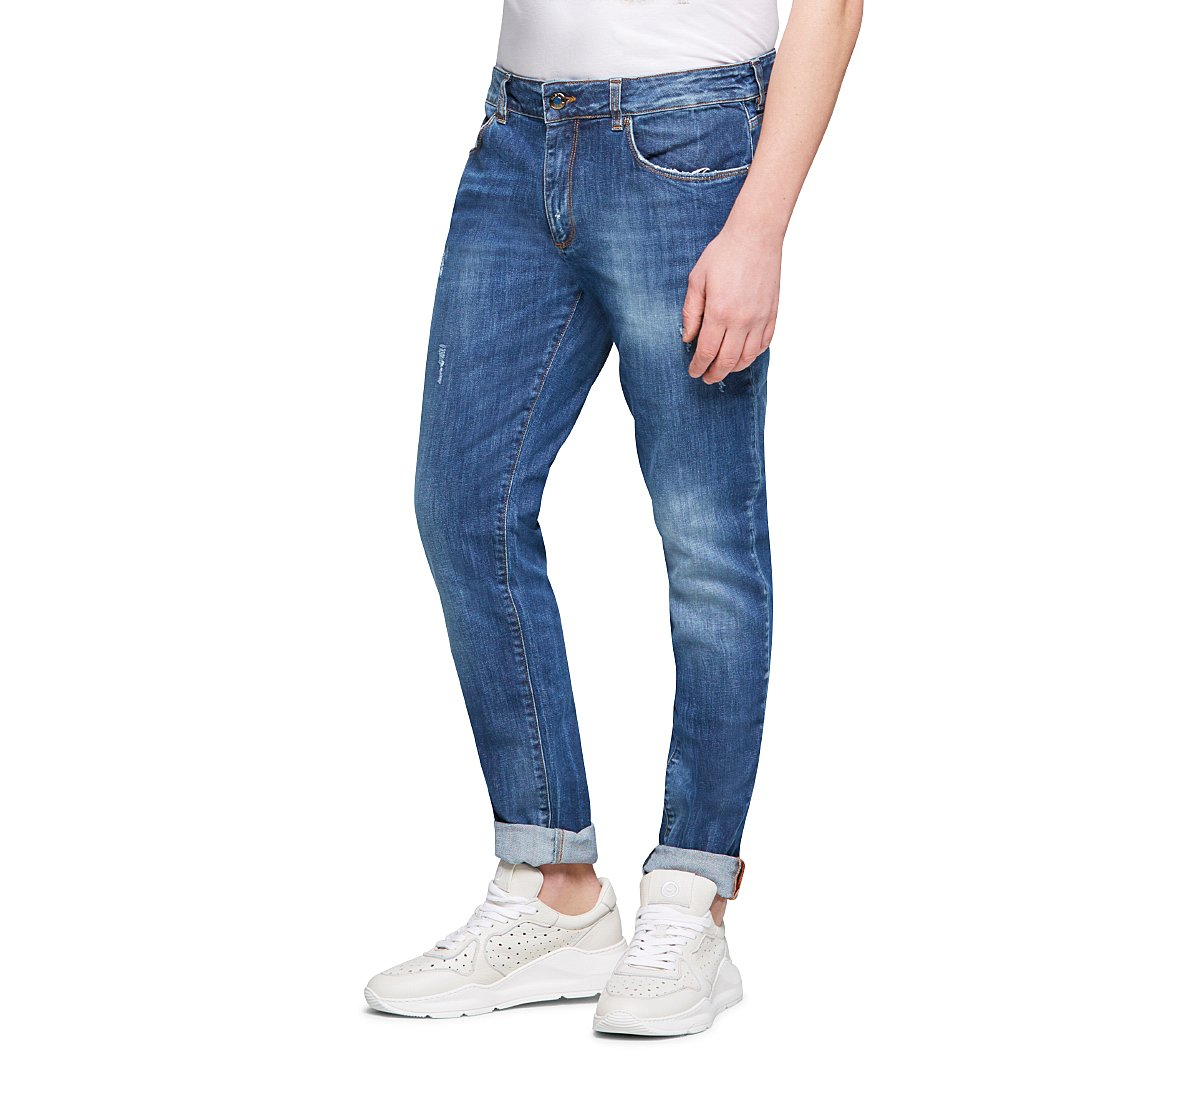 Faded-effect jeans